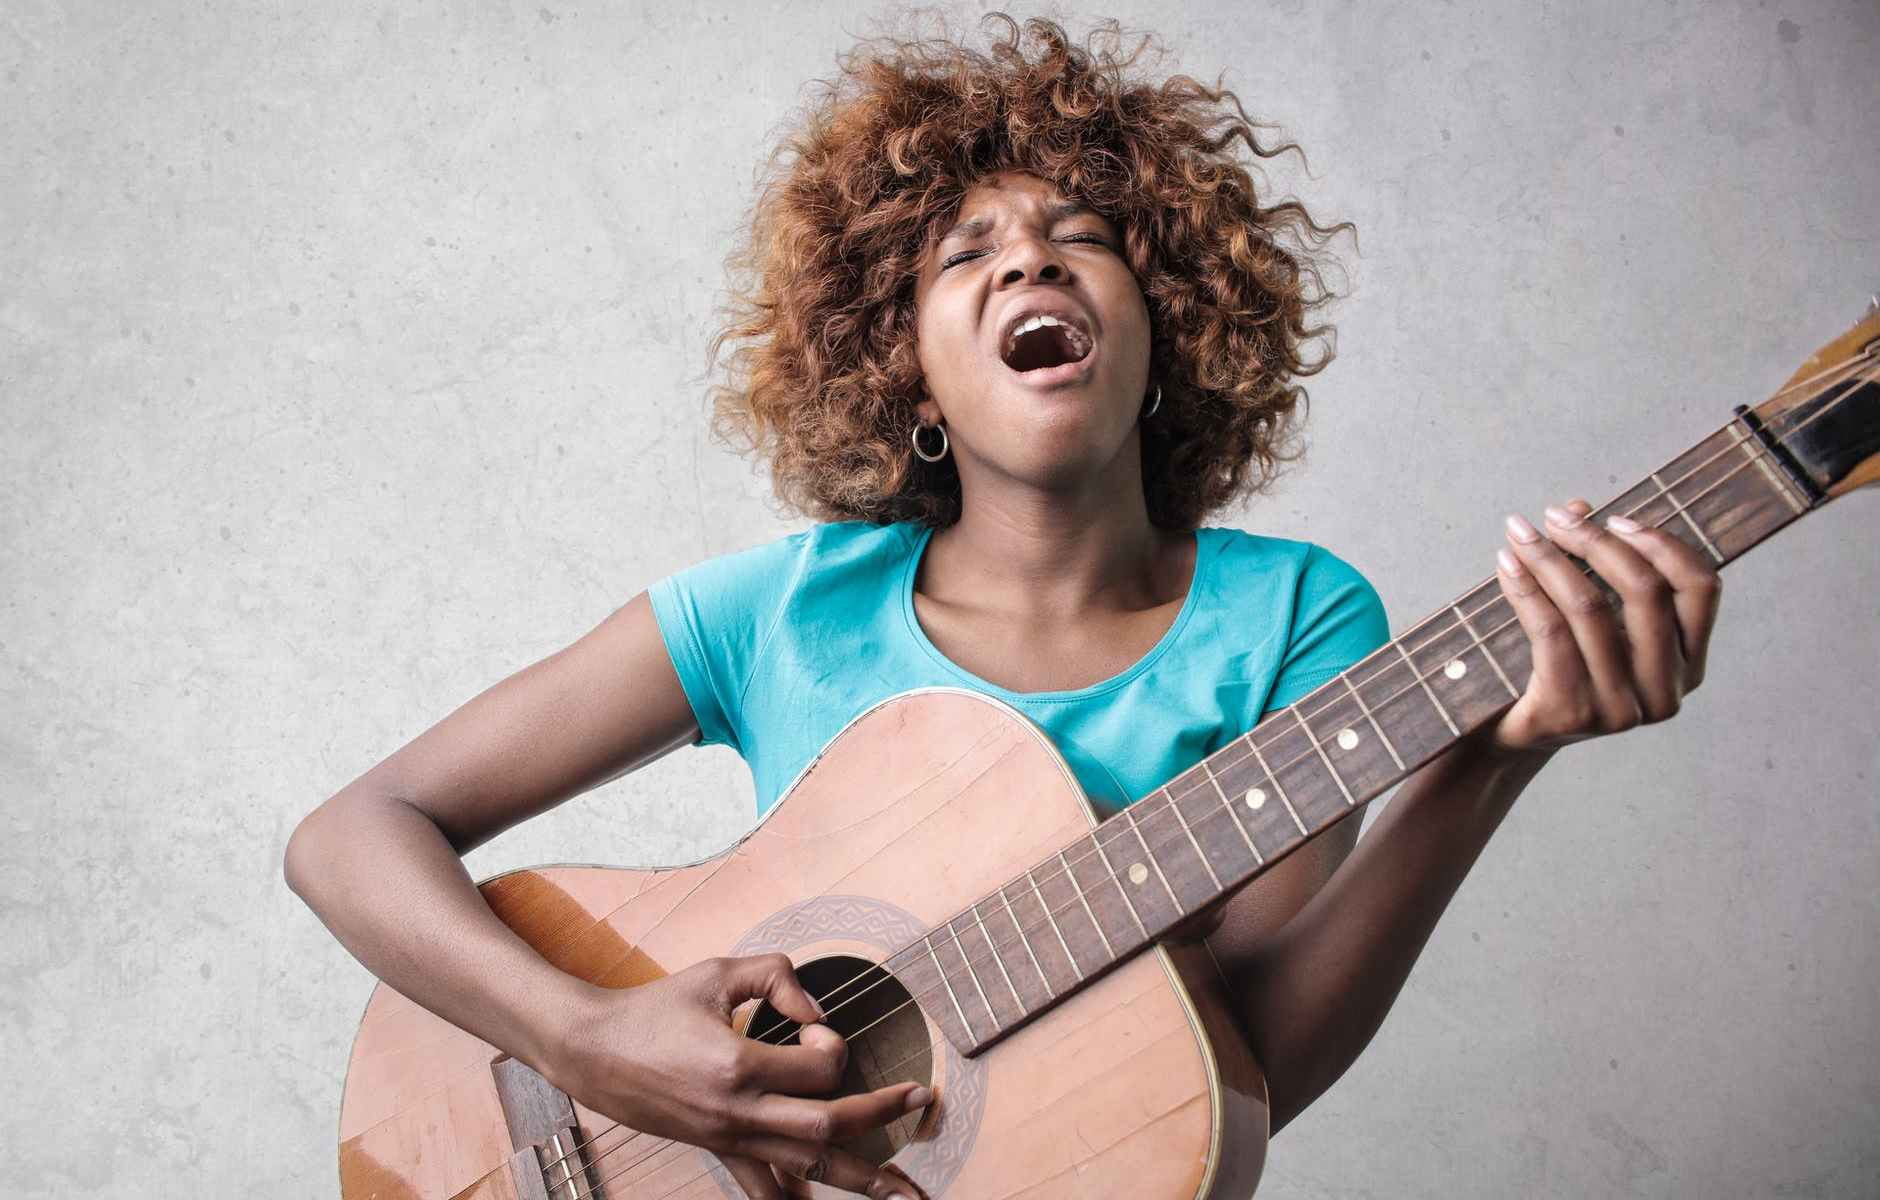 woman playing acoustic guitar while singing